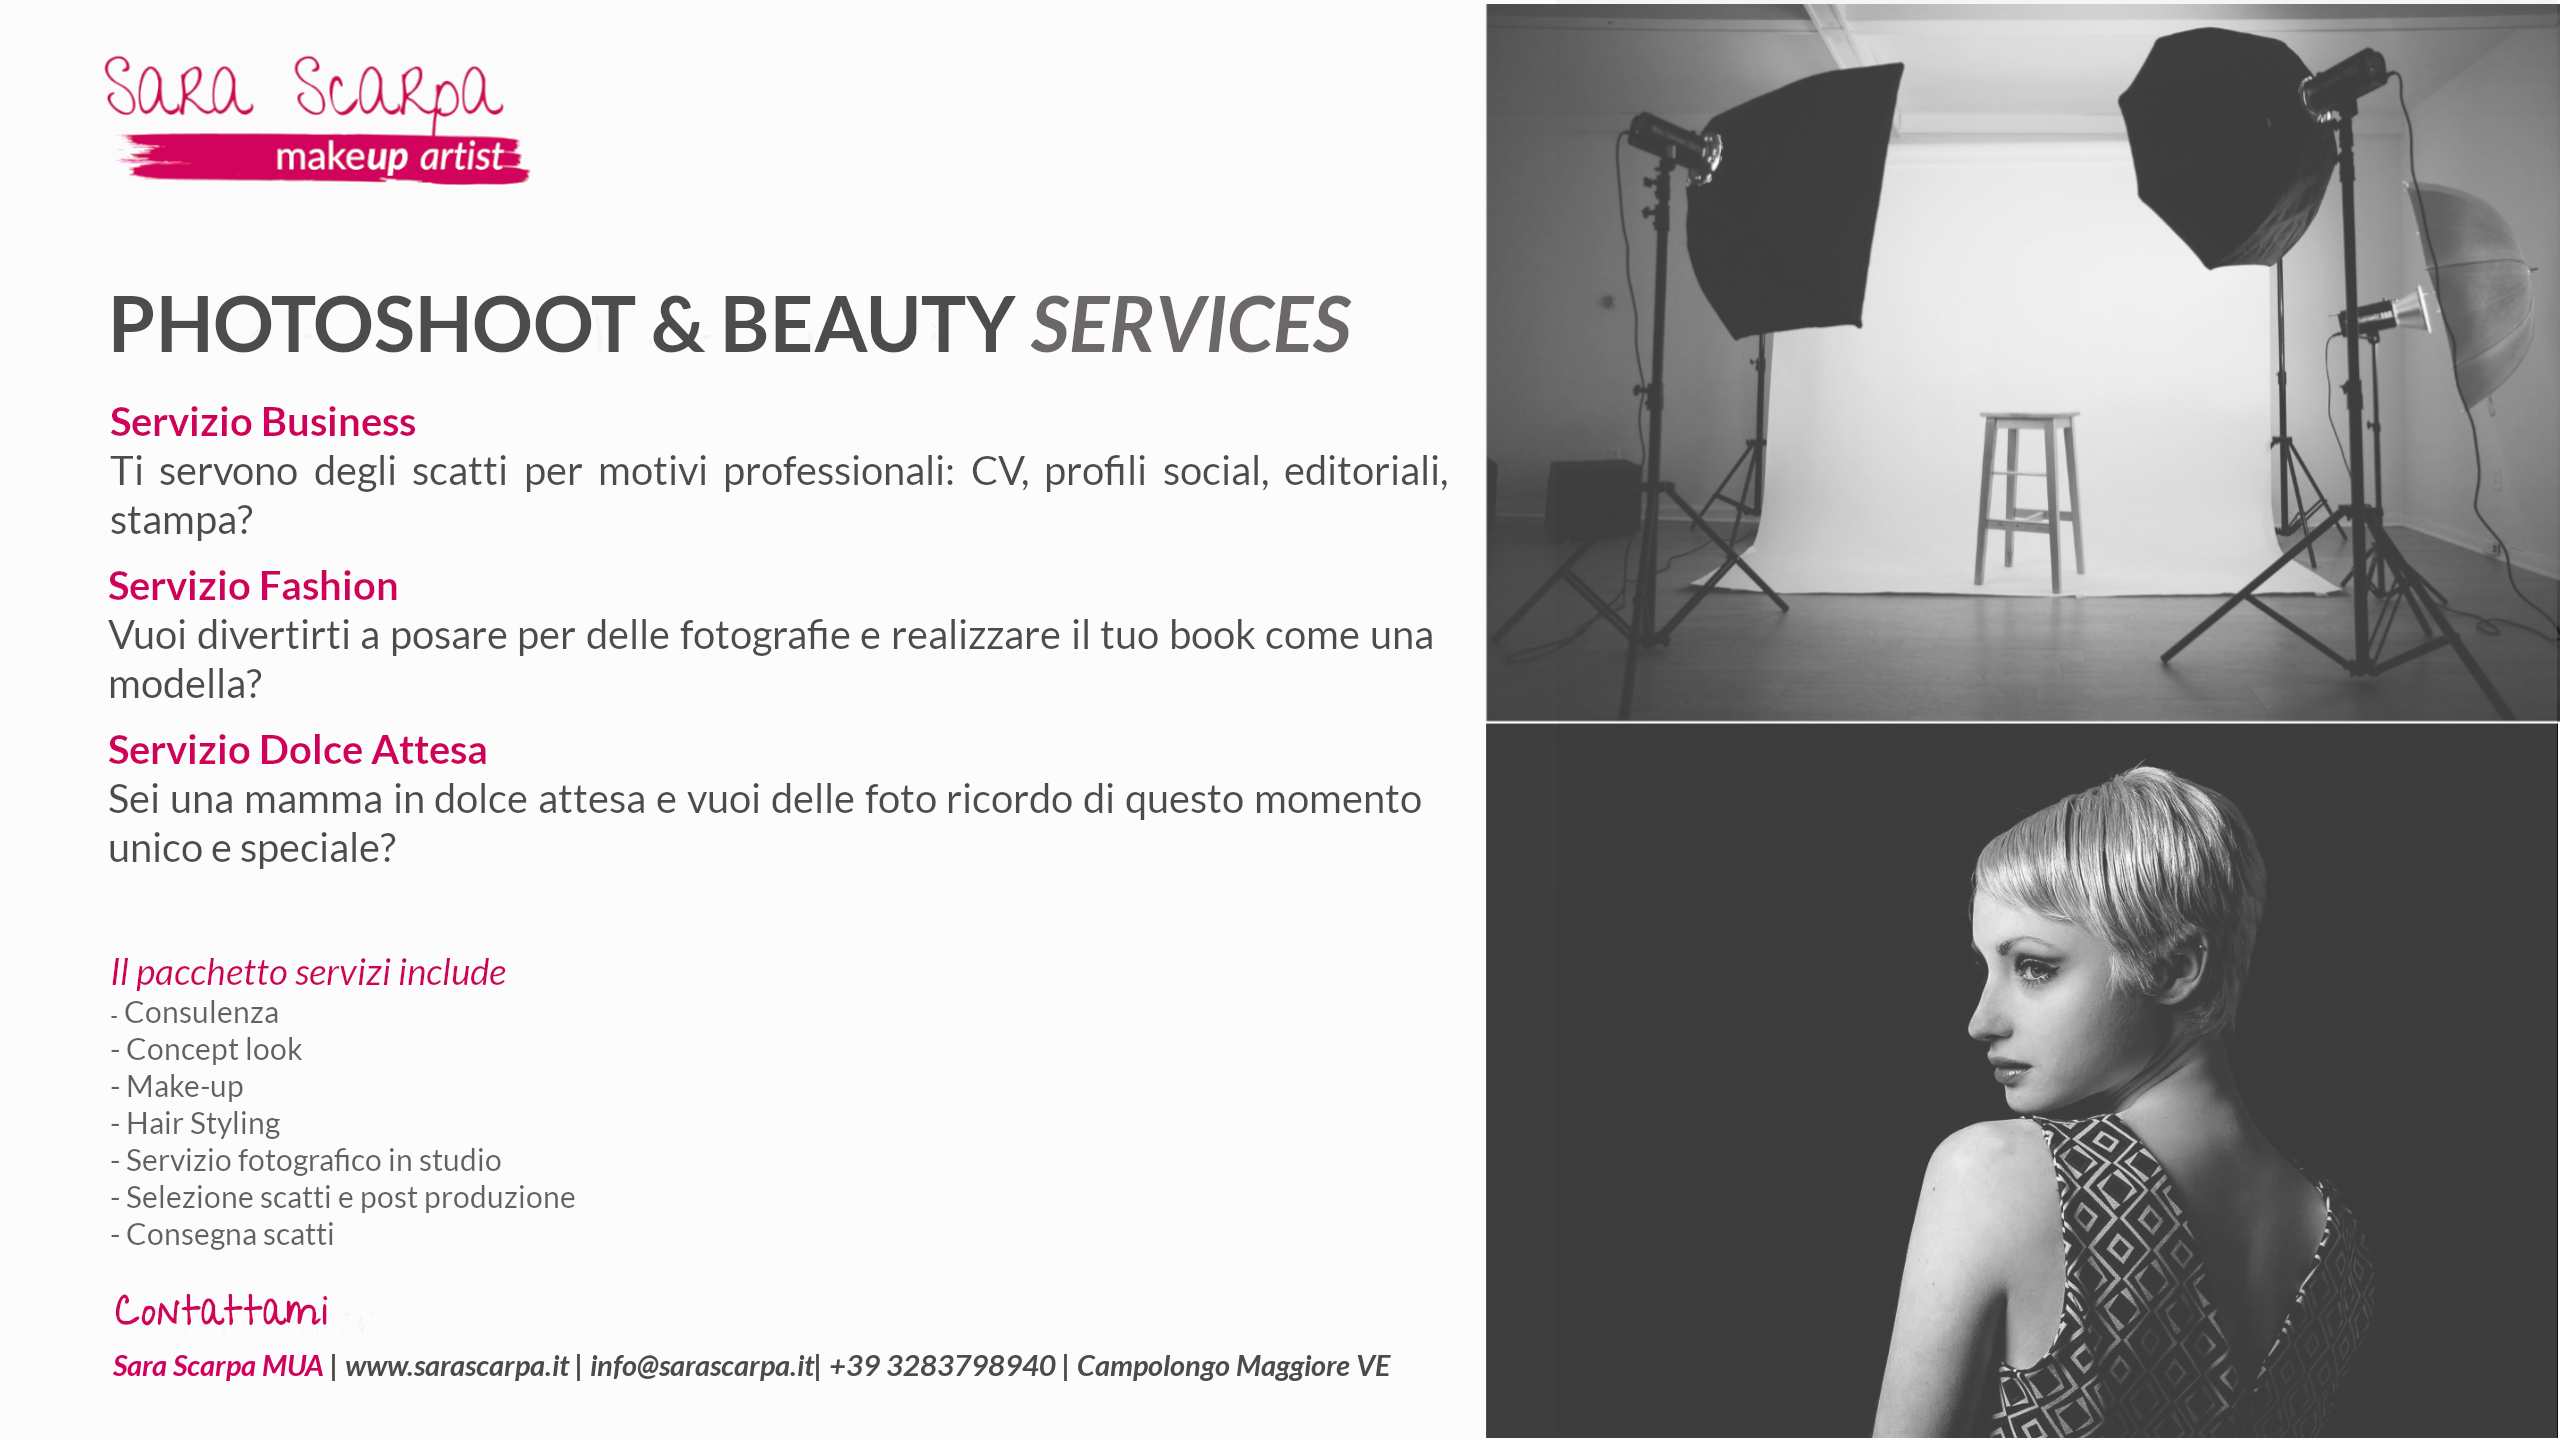 makeup, photoshoot, photo, beauty, services